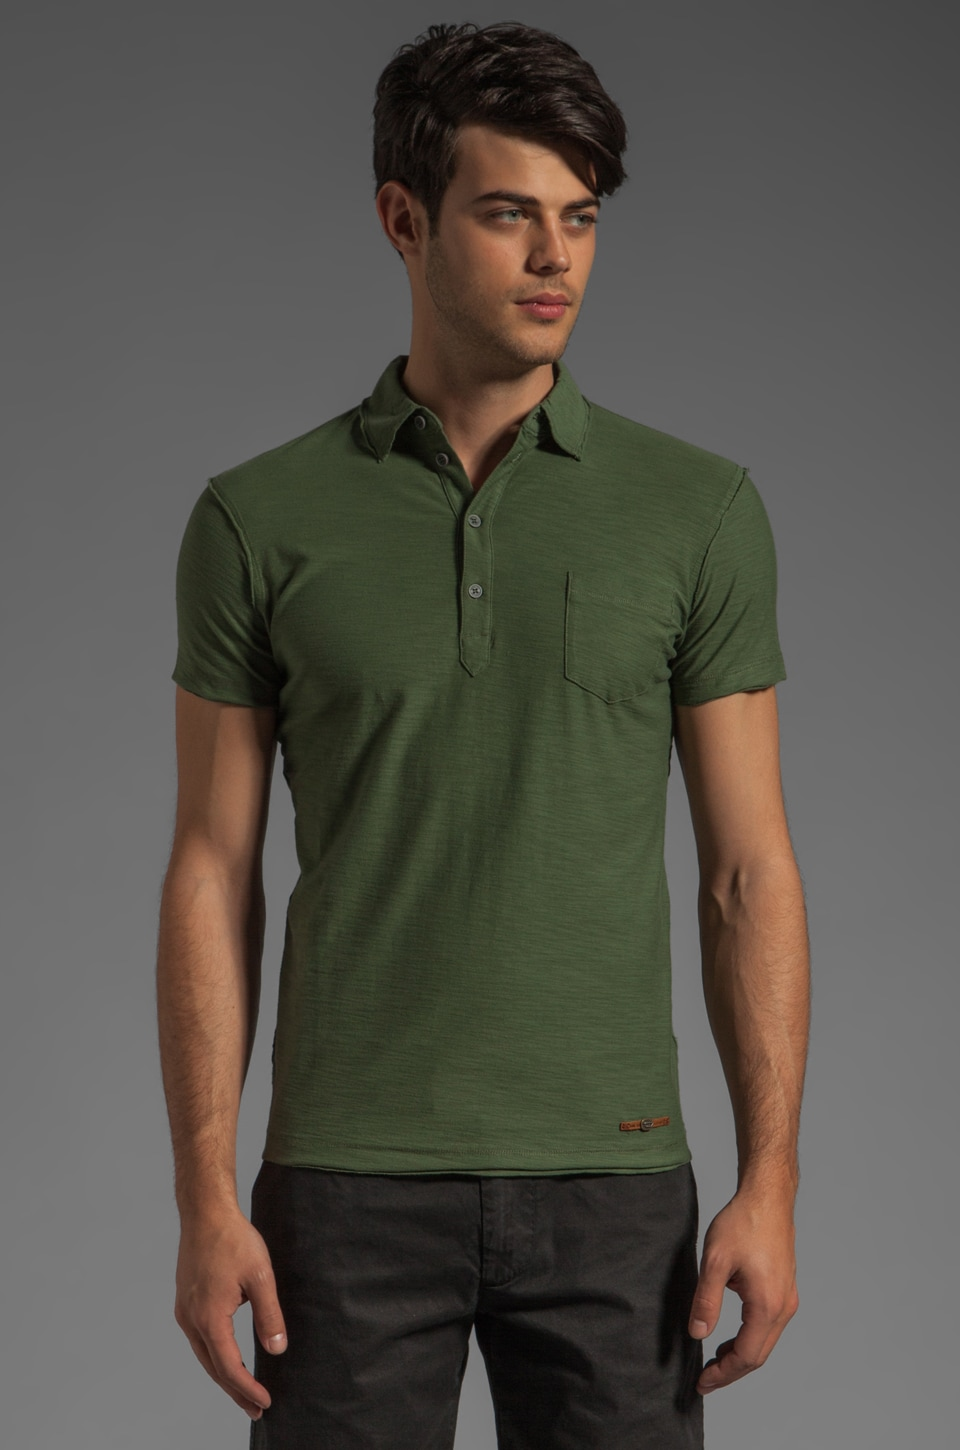 Diesel Ajar Polo in Fern Green